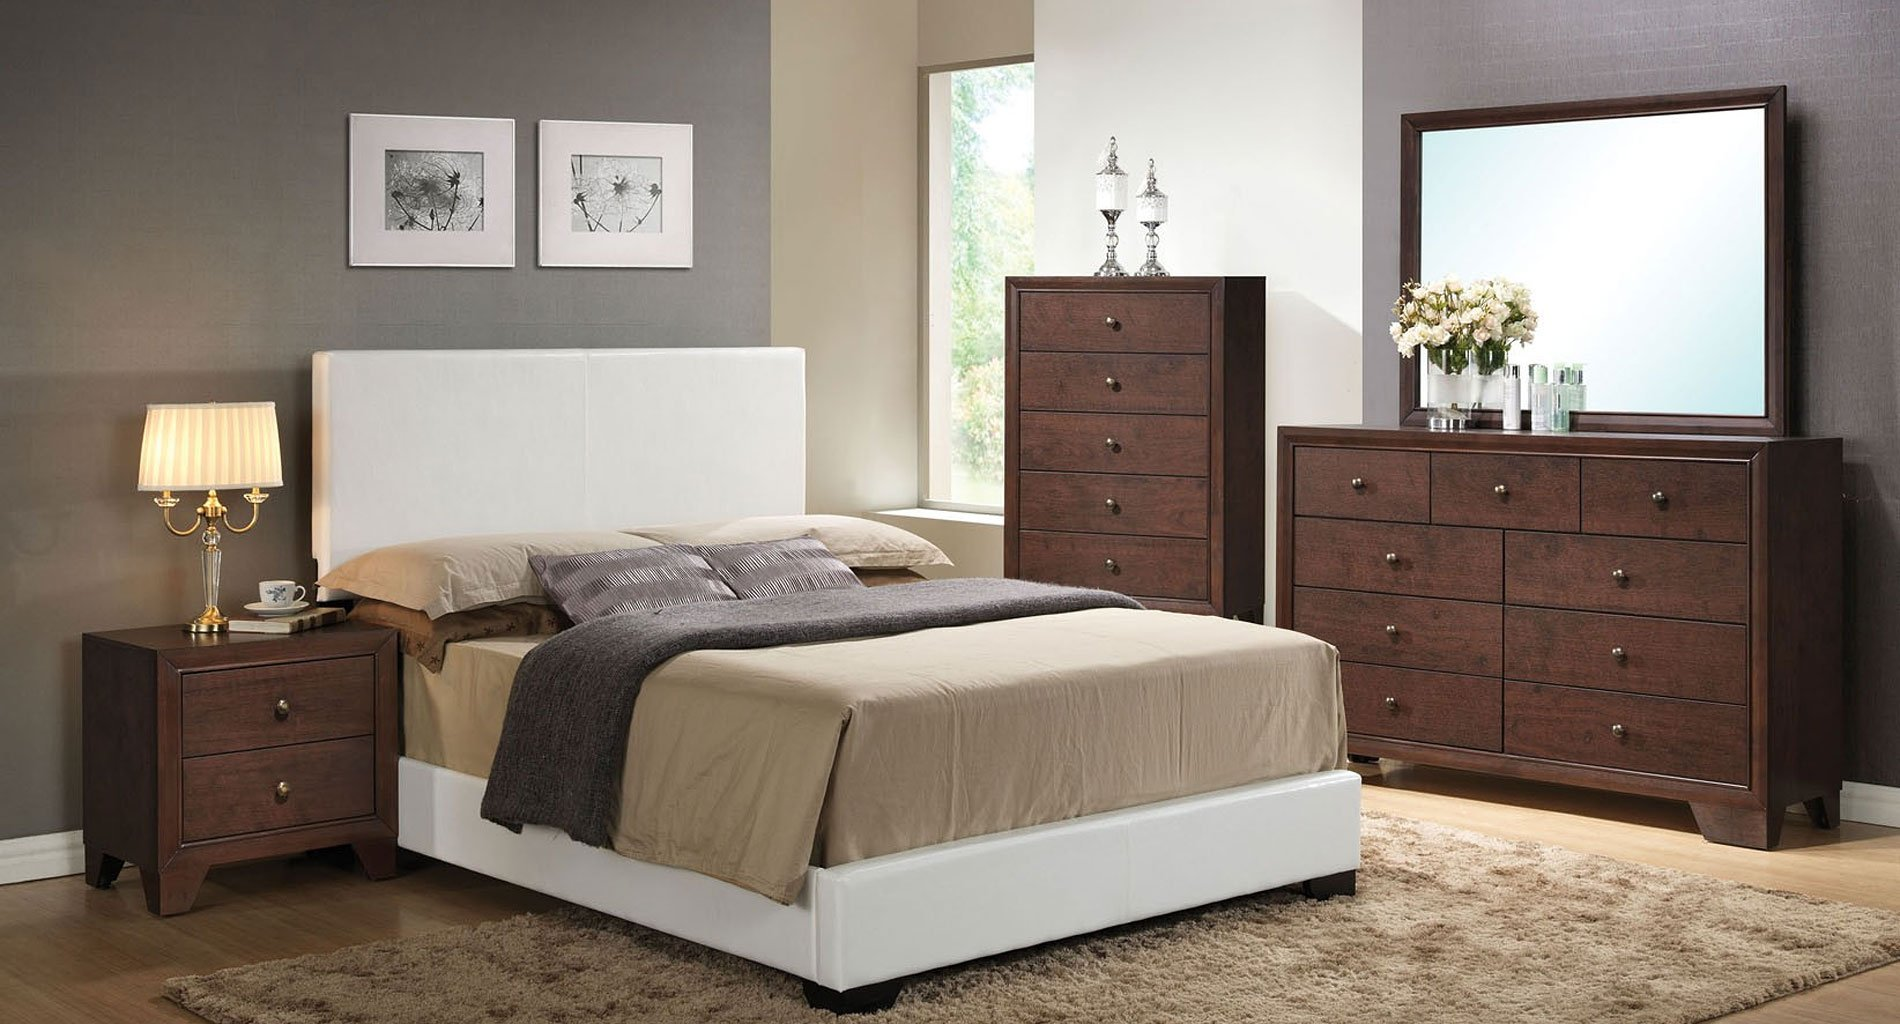 madison bedroom set w ireland white upholstered bed acme furniture furniture cart